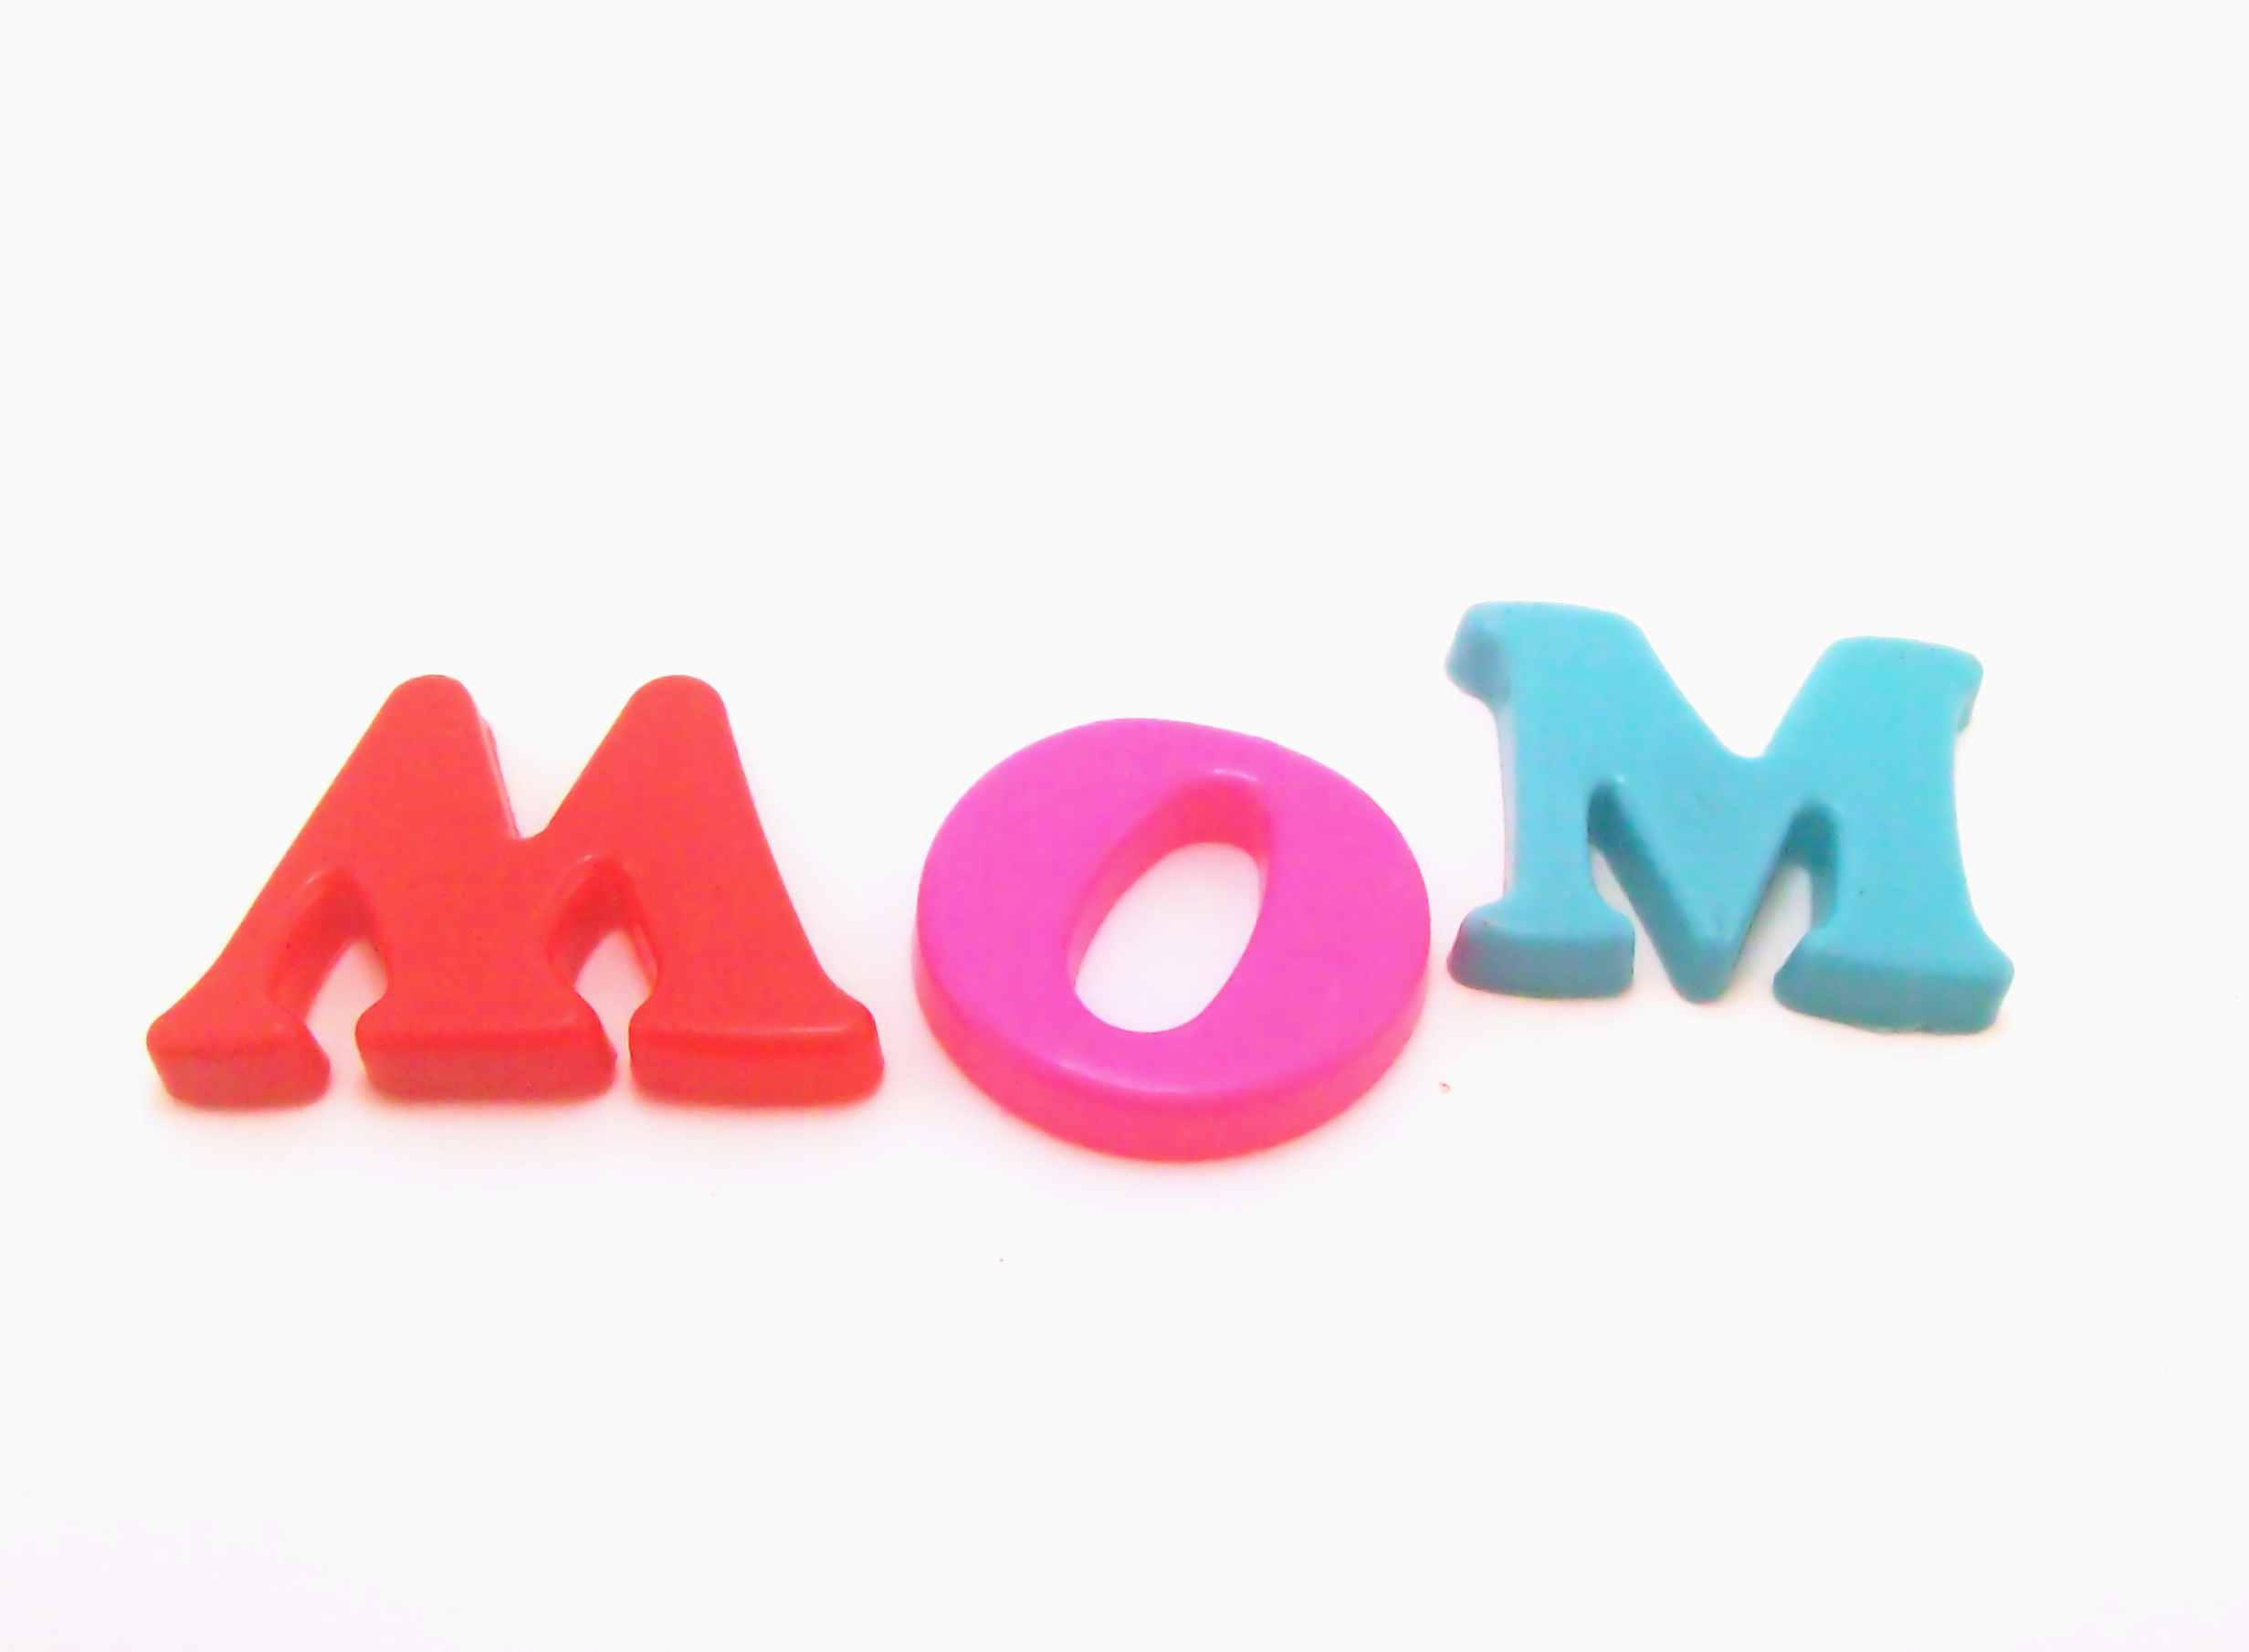 Free Photo: Plastic Letters - Mom - Play, Toy, Plastic - Non